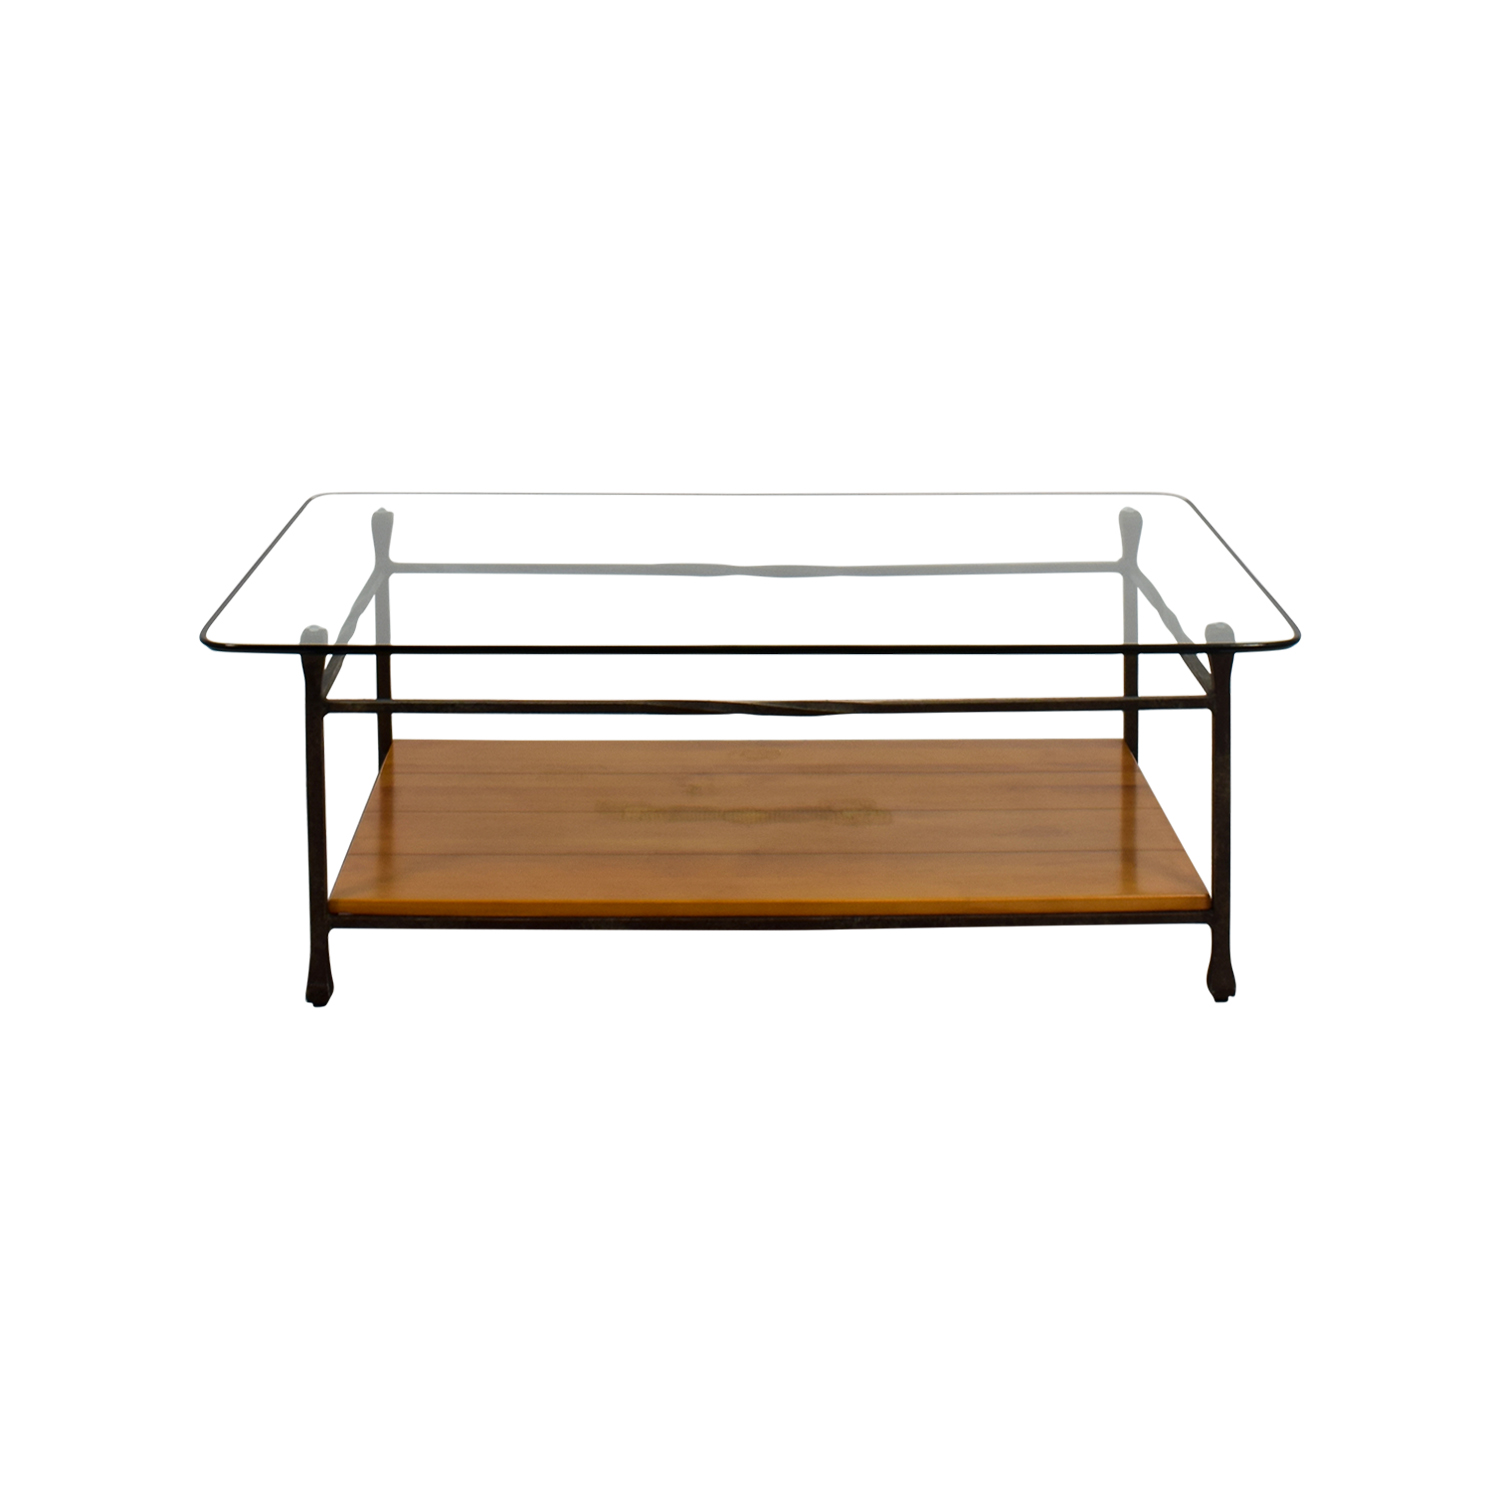 51% OFF CB2 CB2 Mill Industrial Iron Coffee Table Tables